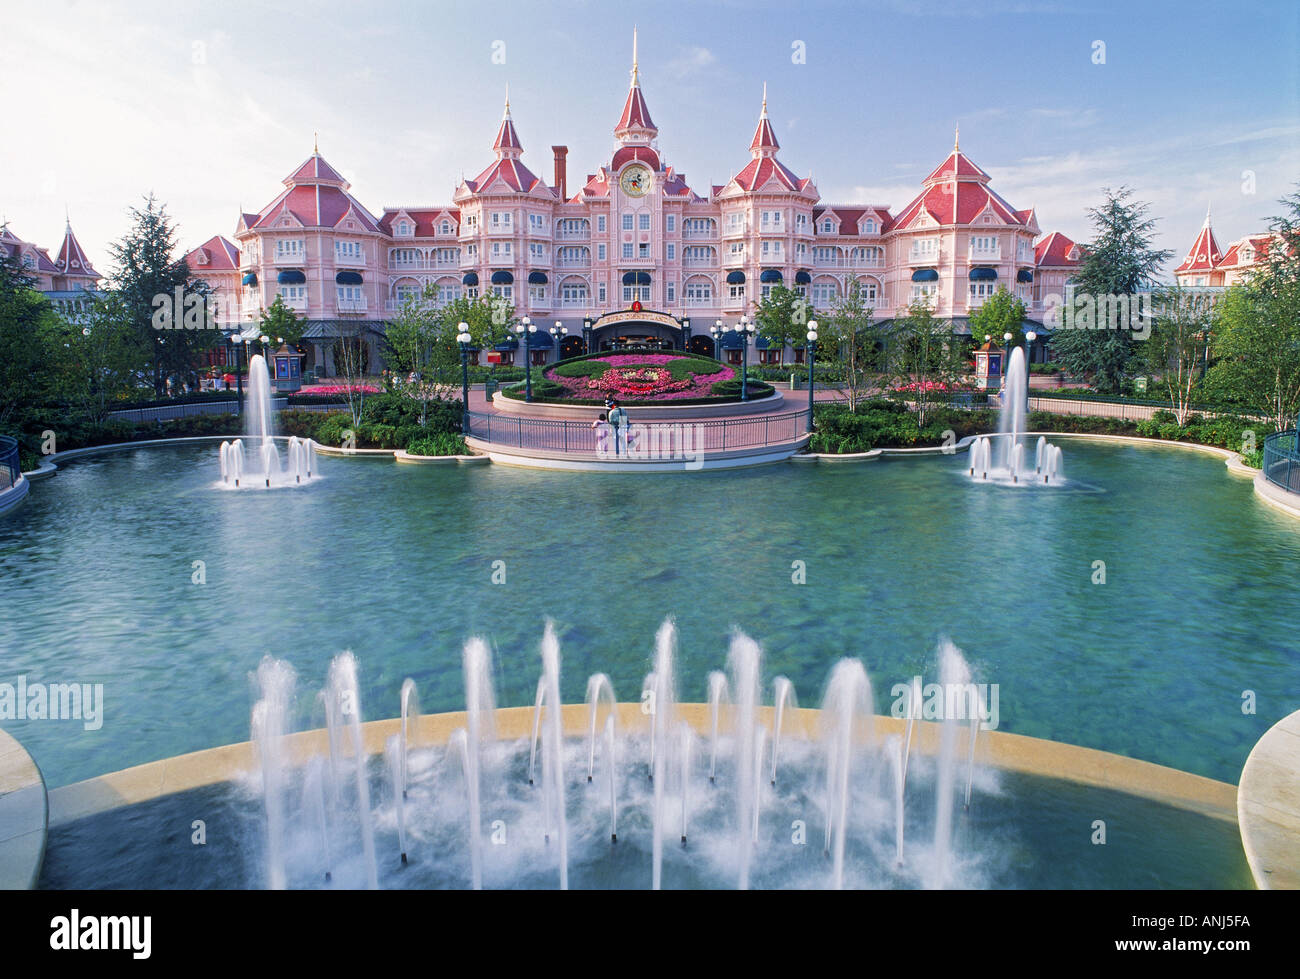 Eurodisney Hotel And Fountains At Euro Disney Resort Near